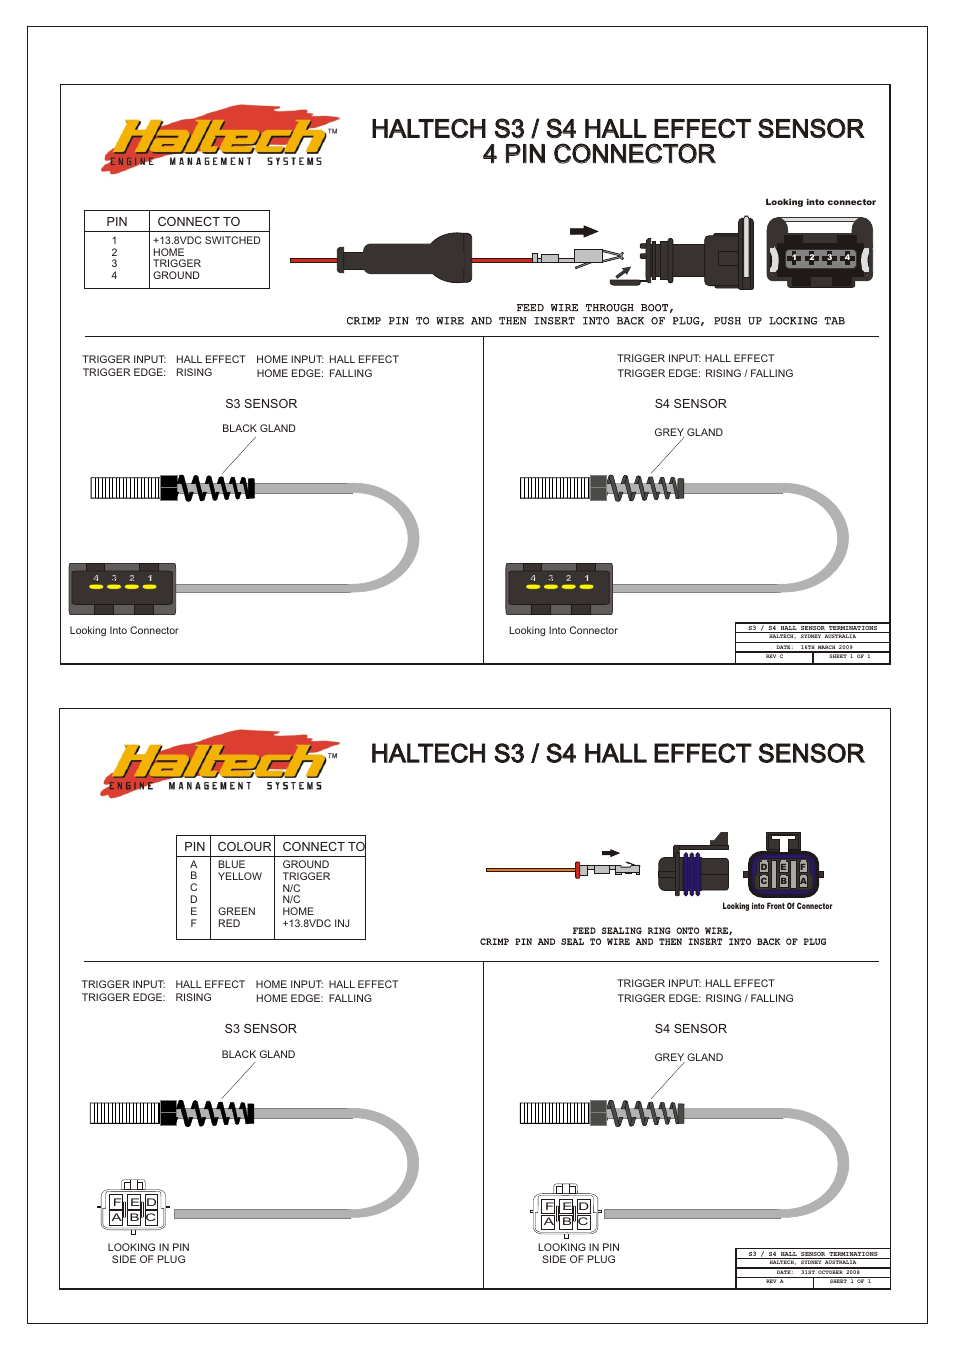 Wiring Manual Pdf  11x17 Color Wiring Diagram 1971 Vw